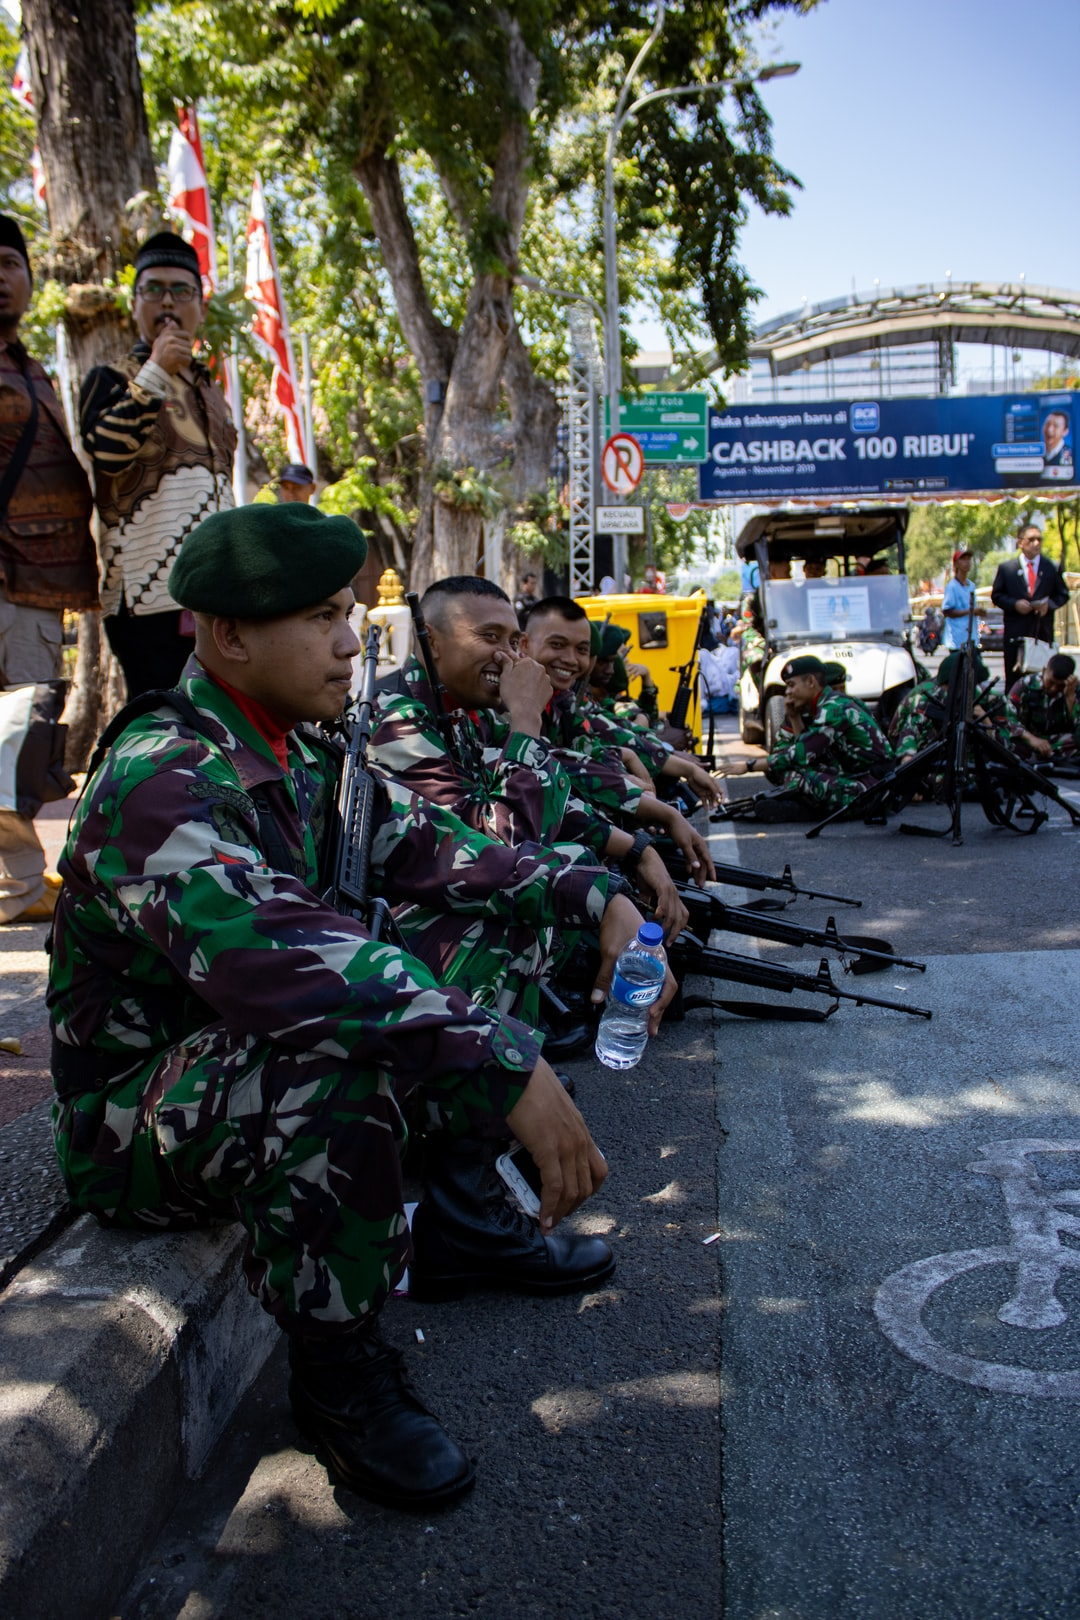 Surabaya, Indonesia - Aug 17, 2019: We are celebrating Independence day of Indonesia. this photo was taken at the ceremonial event in Surabaya.